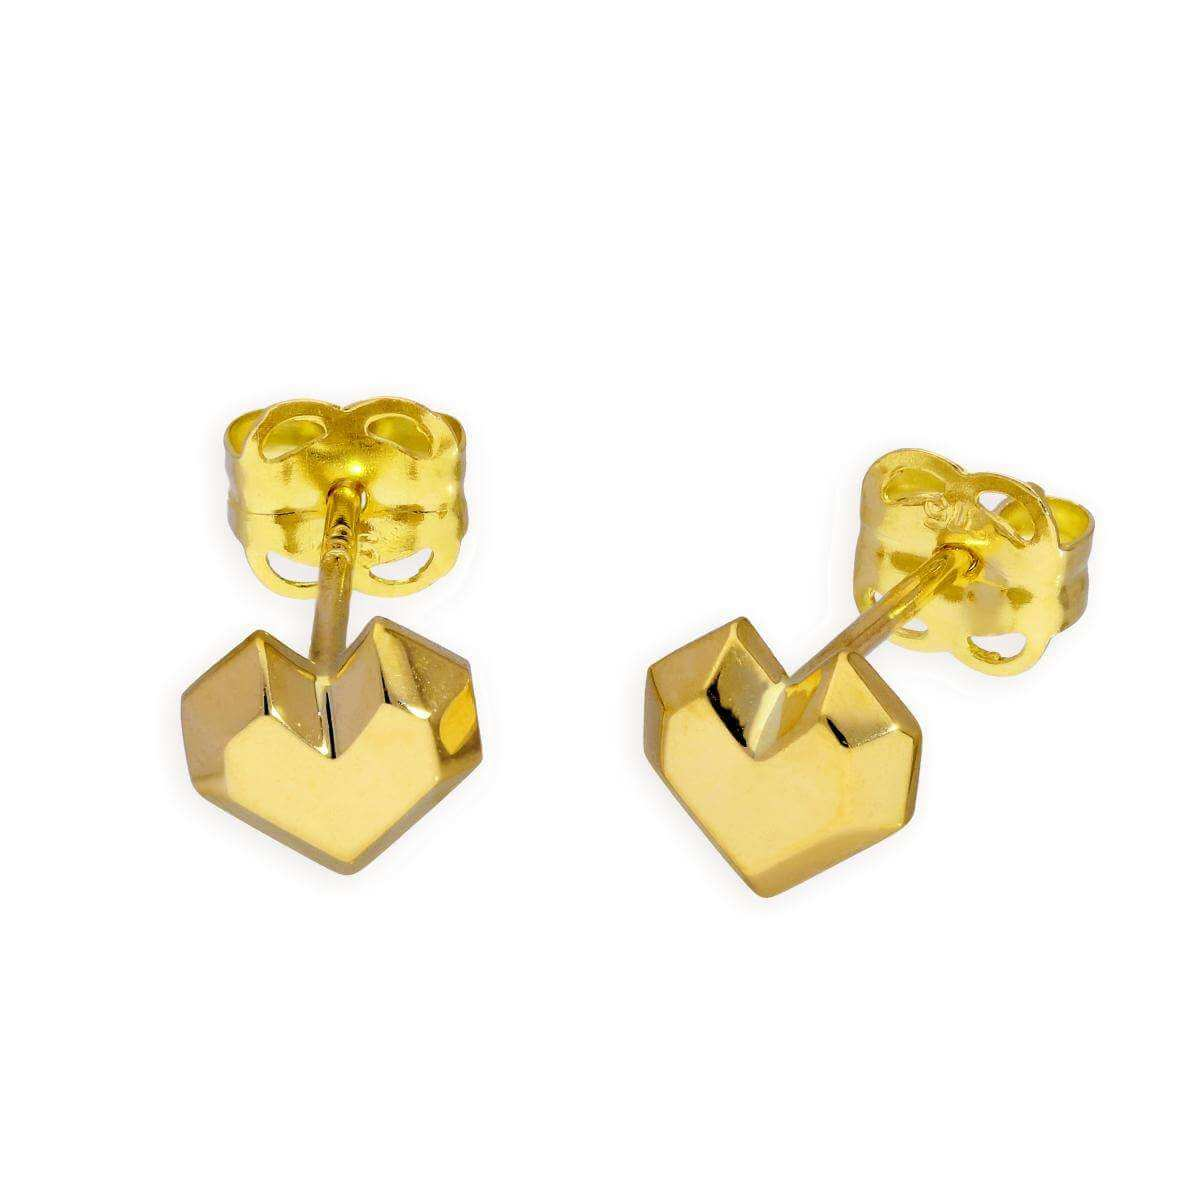 9ct Gold Origami Heart Stud Earrings